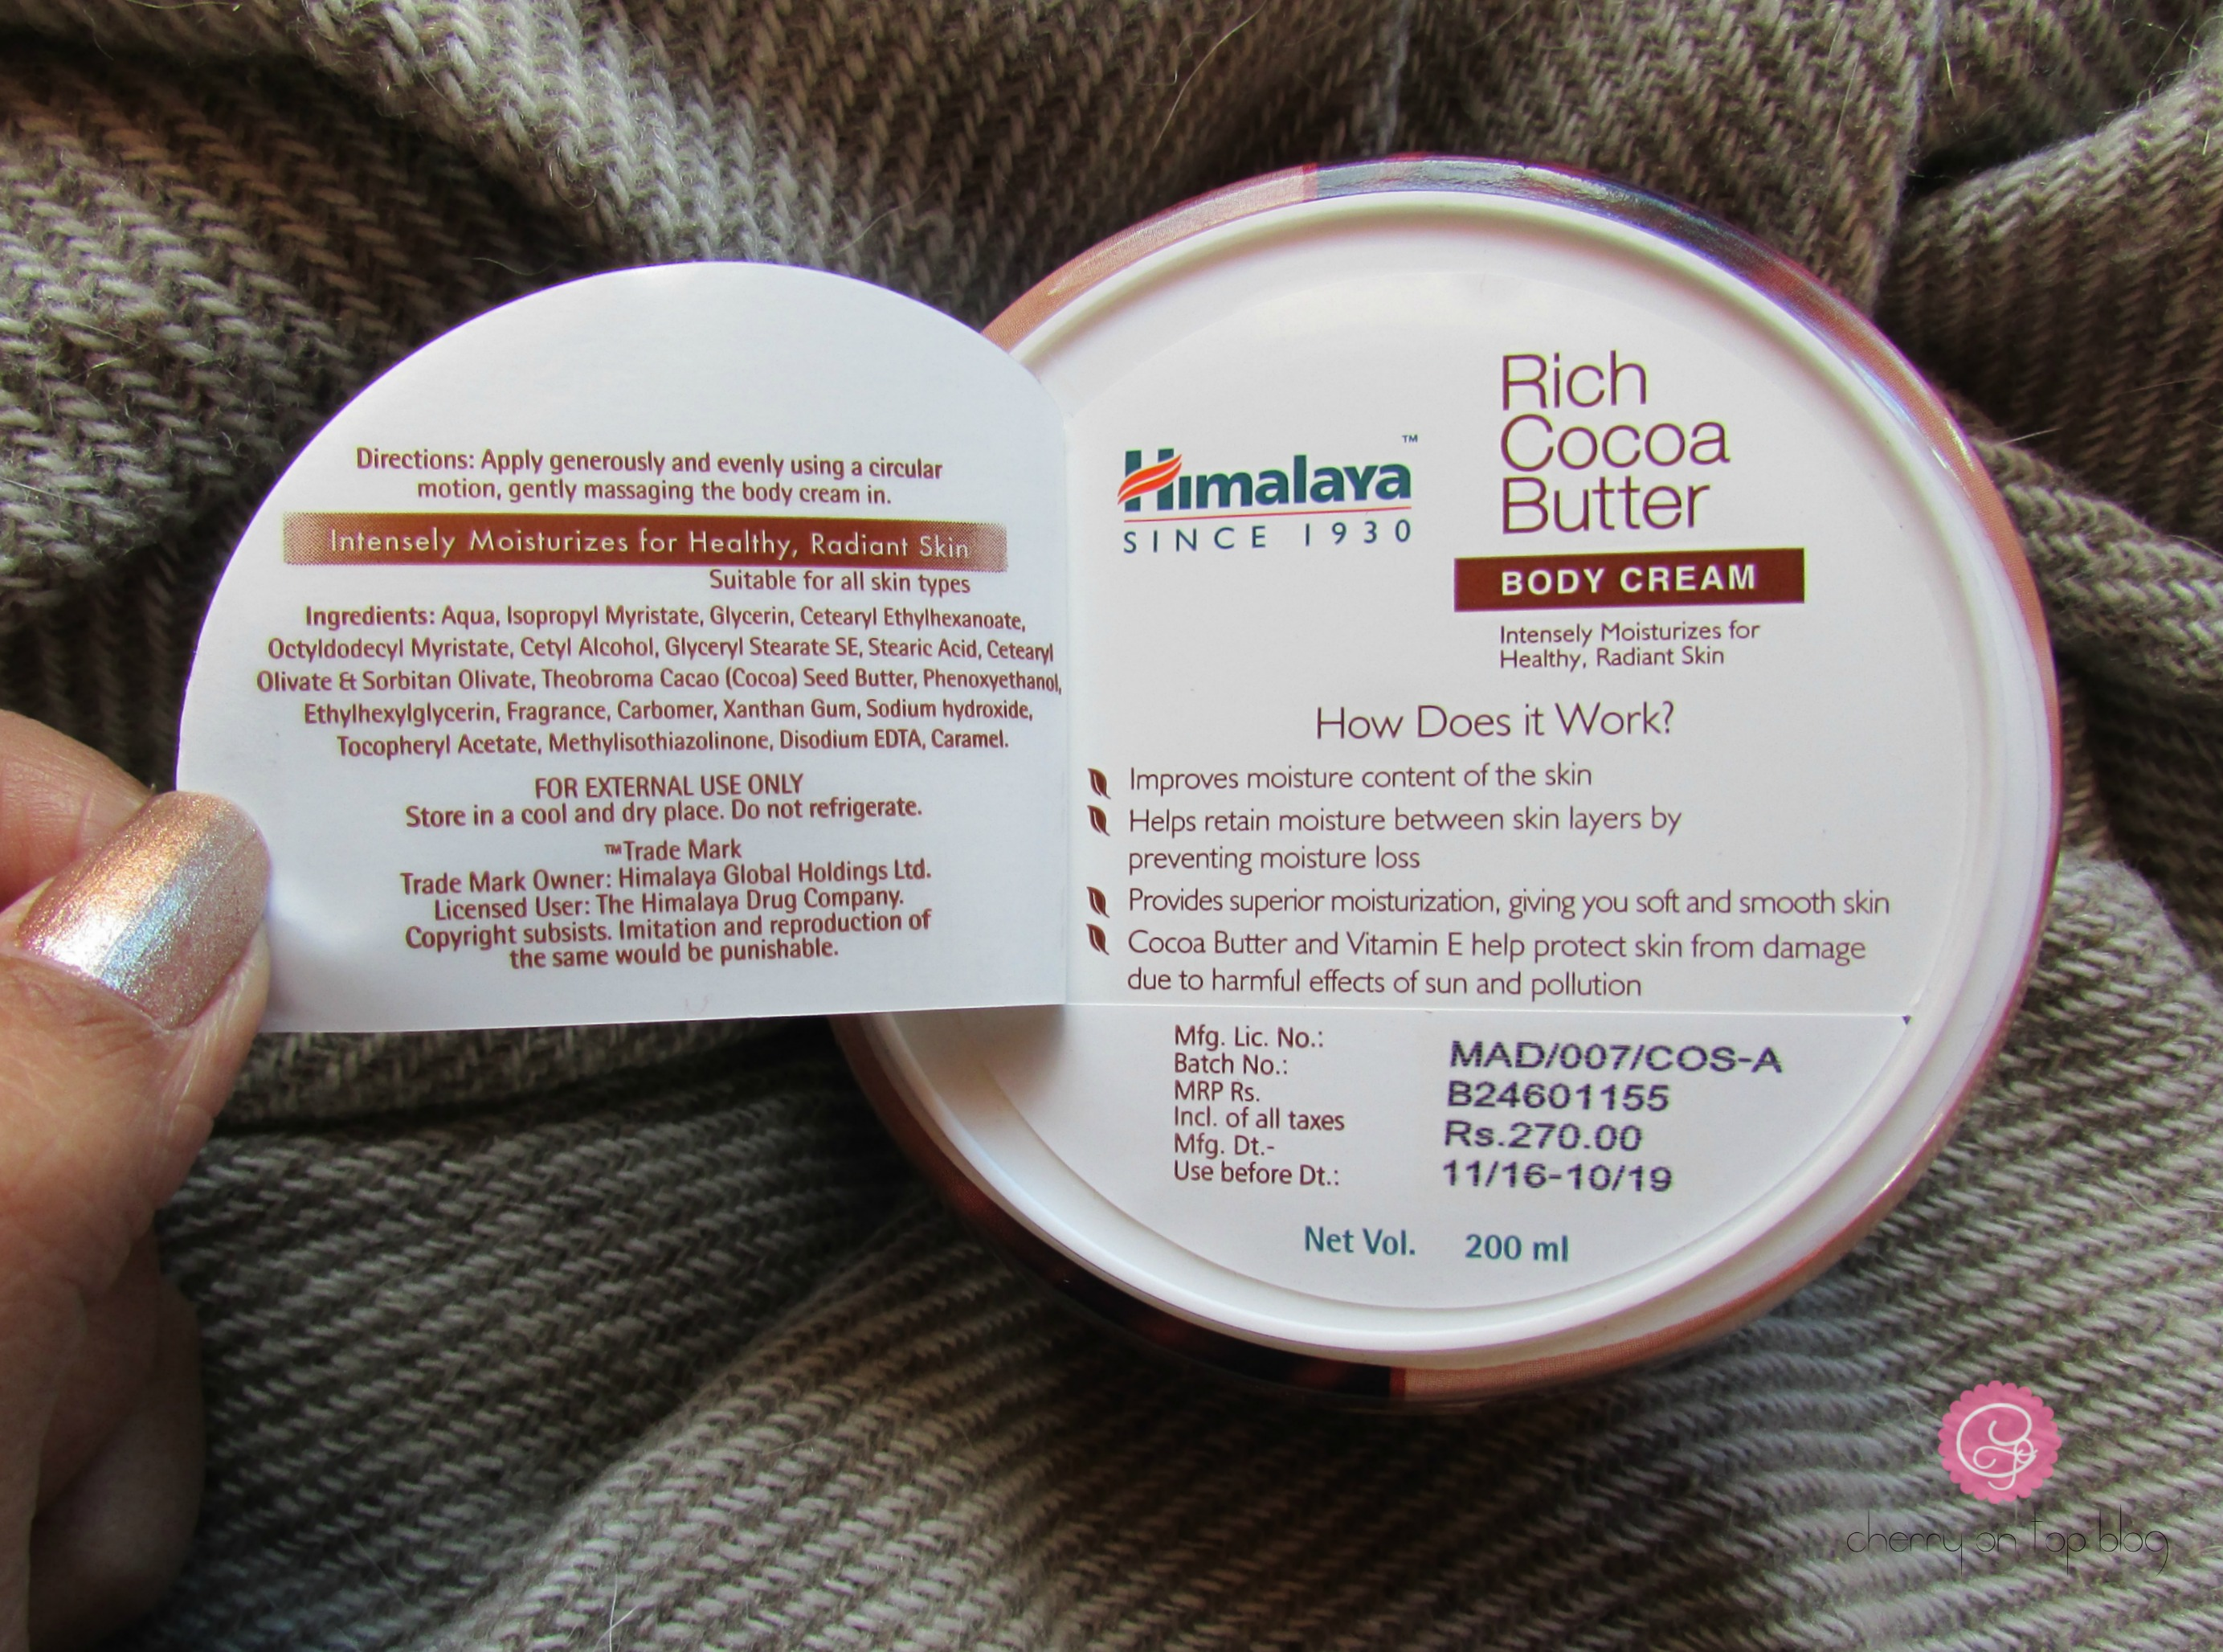 Himalaya Herbals Rich Cocoa Butter Body Cream Review, Price, Buy Online| Cherry On Top